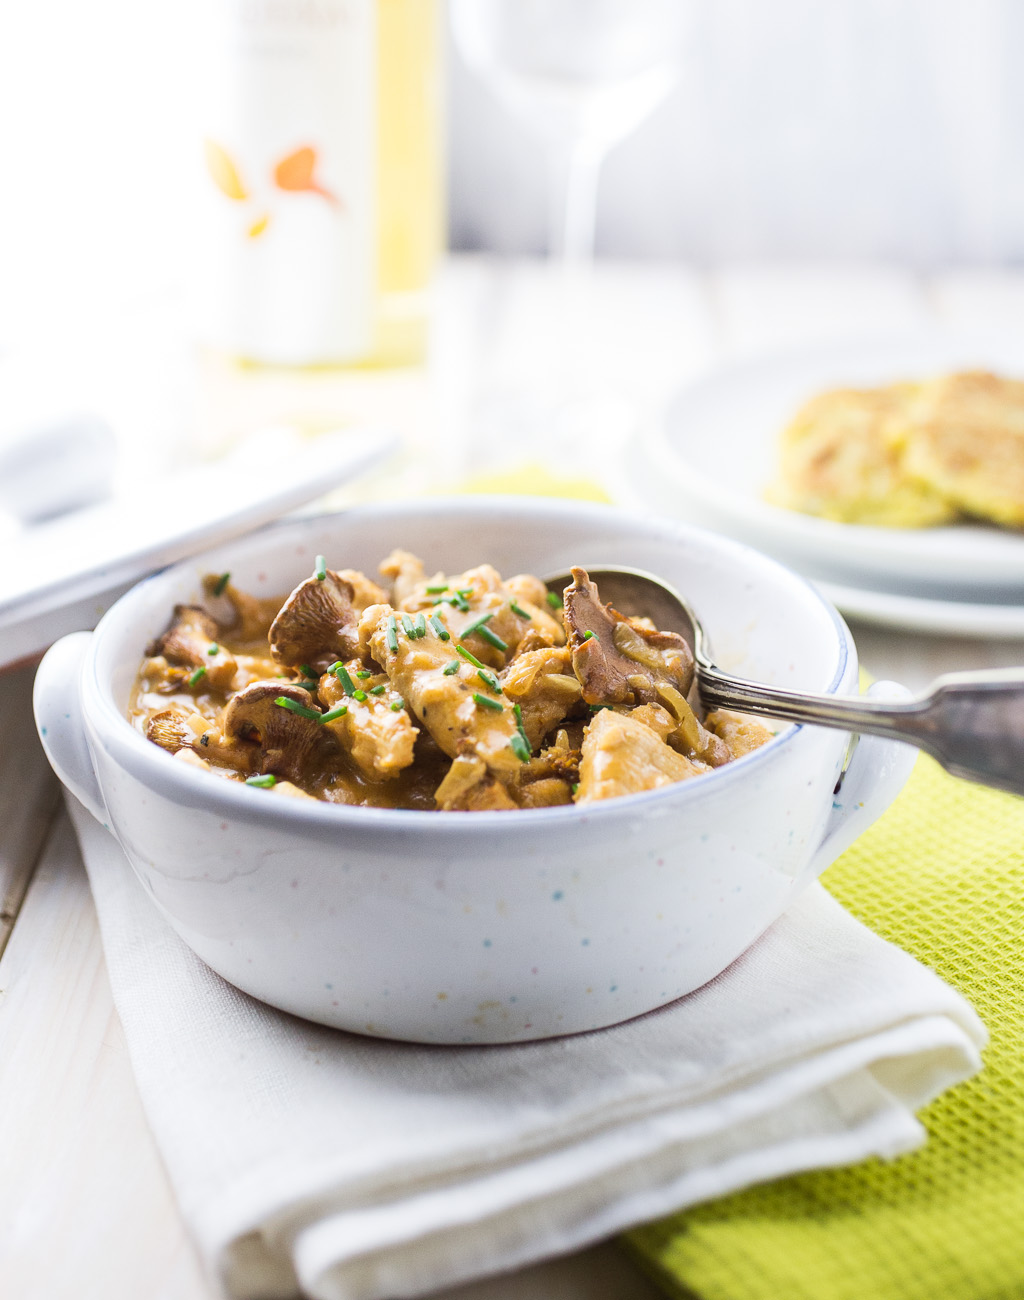 Geschnetzeltes with Chanterelle Mushrooms { thegirllovestoeat.com }